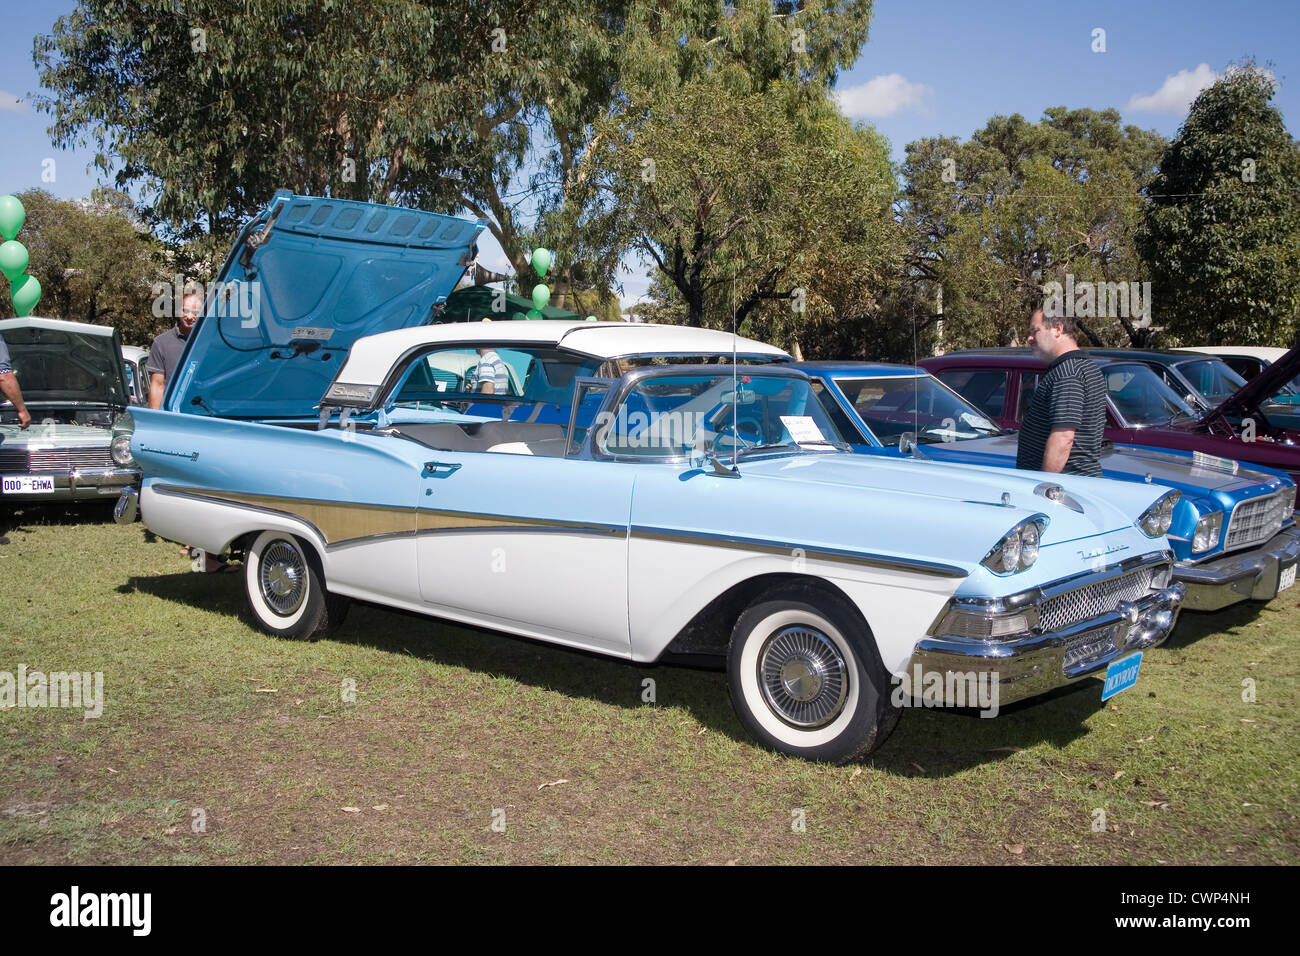 1950s Ford Skyliner Classic Car With Electric Folding Roof